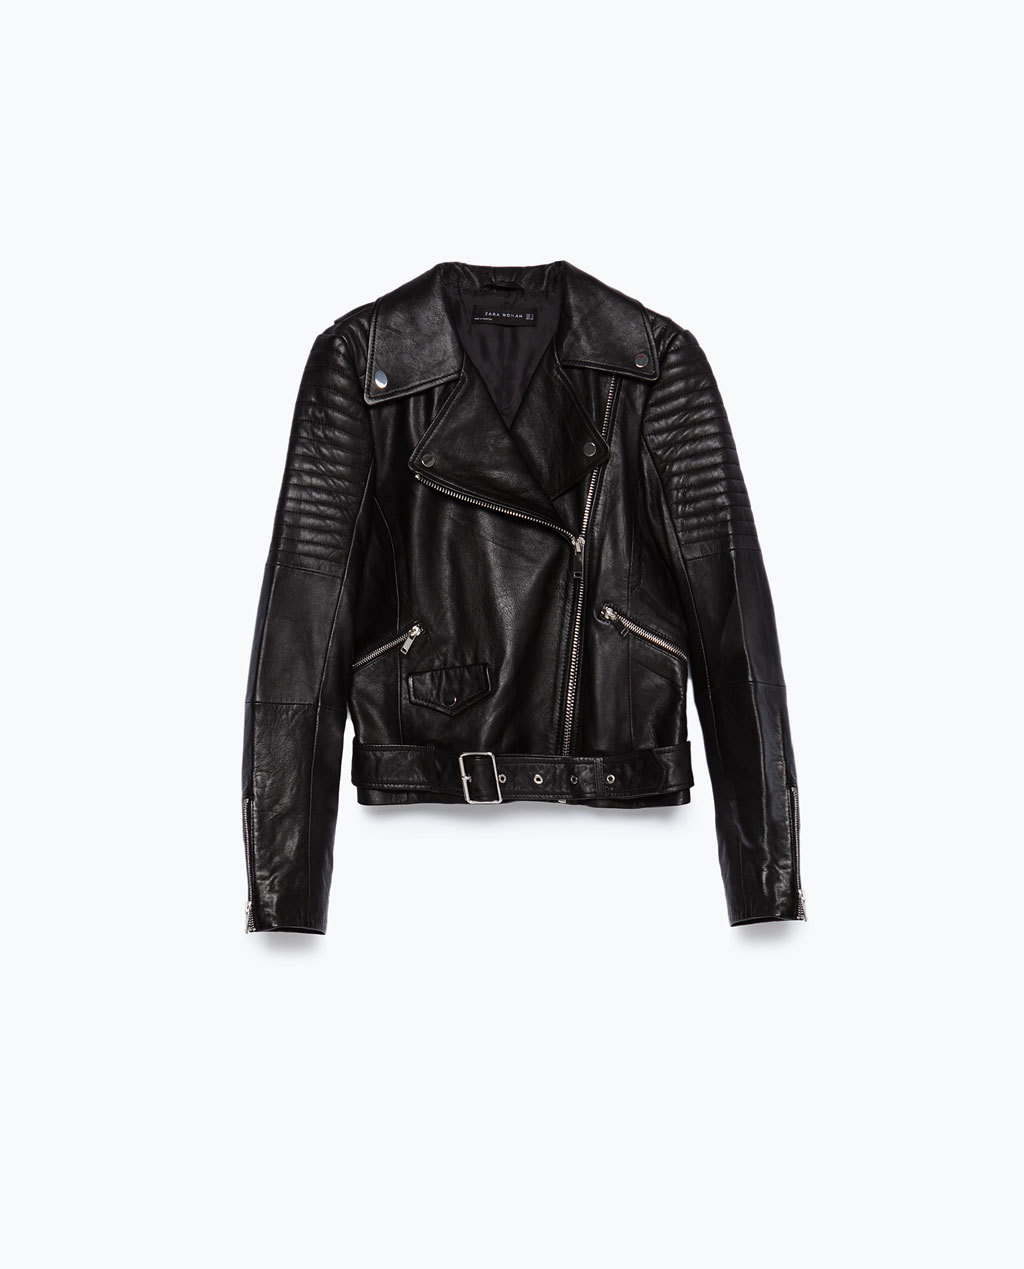 Leather Jacket - pattern: plain; style: biker; collar: asymmetric biker; predominant colour: black; occasions: casual, creative work; length: standard; fit: straight cut (boxy); fibres: leather - 100%; sleeve length: long sleeve; sleeve style: standard; texture group: leather; collar break: medium; pattern type: fabric; embellishment: quilted; season: a/w 2015; wardrobe: basic